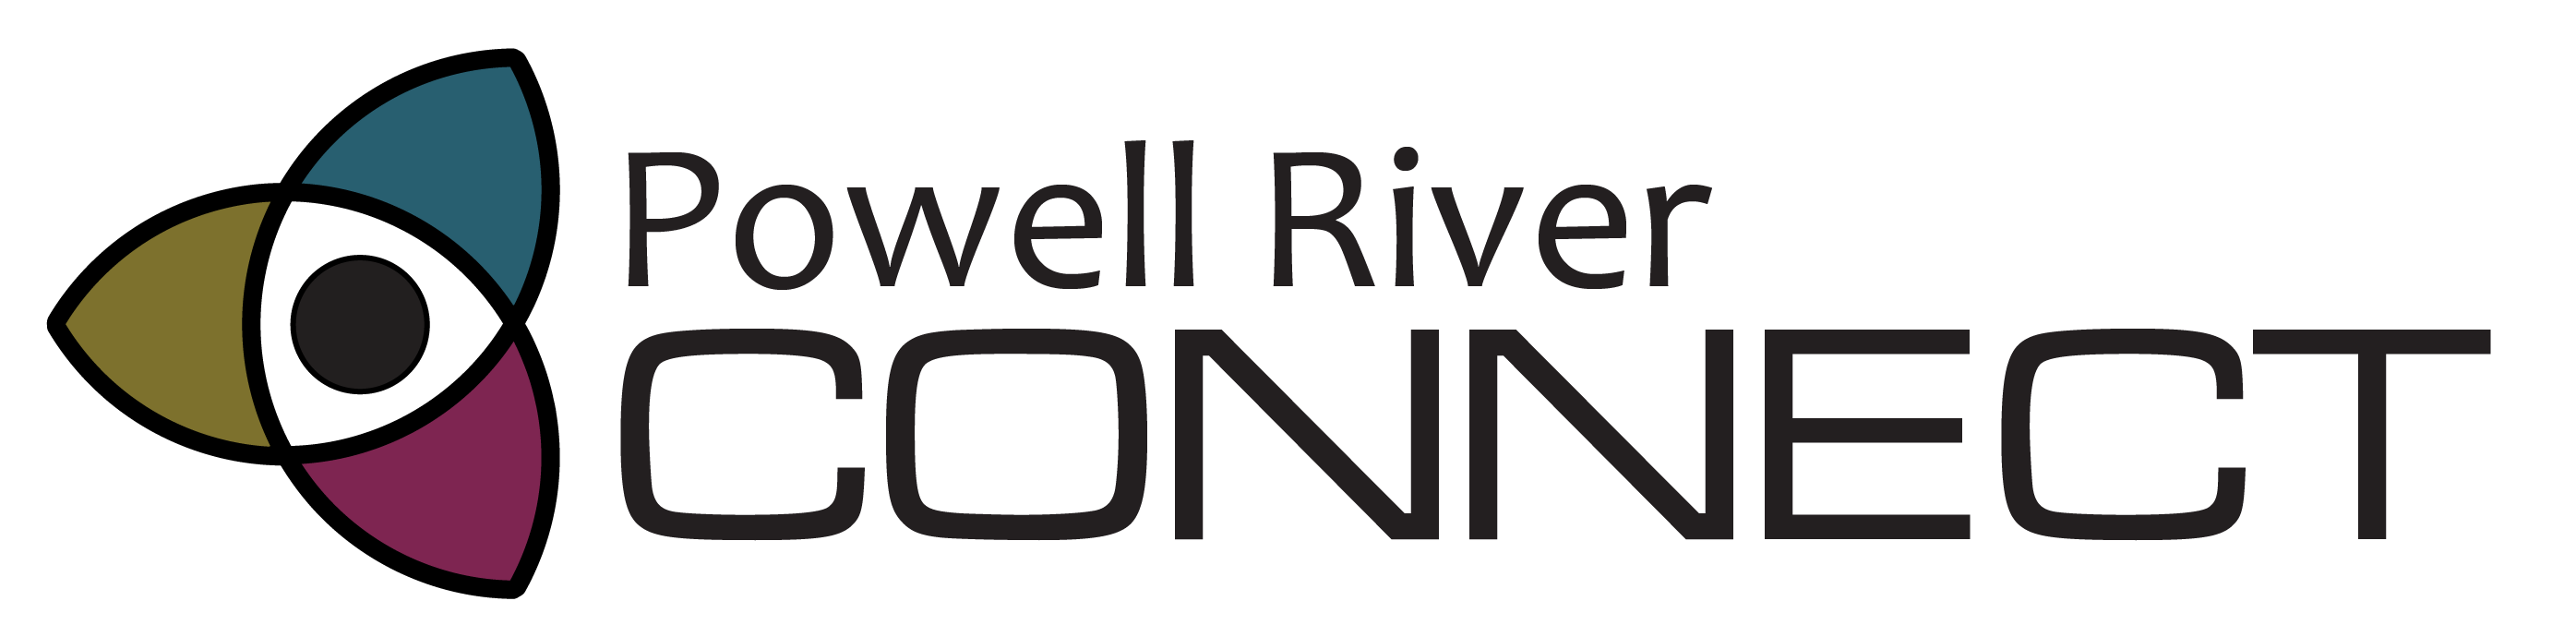 Powell River Connect